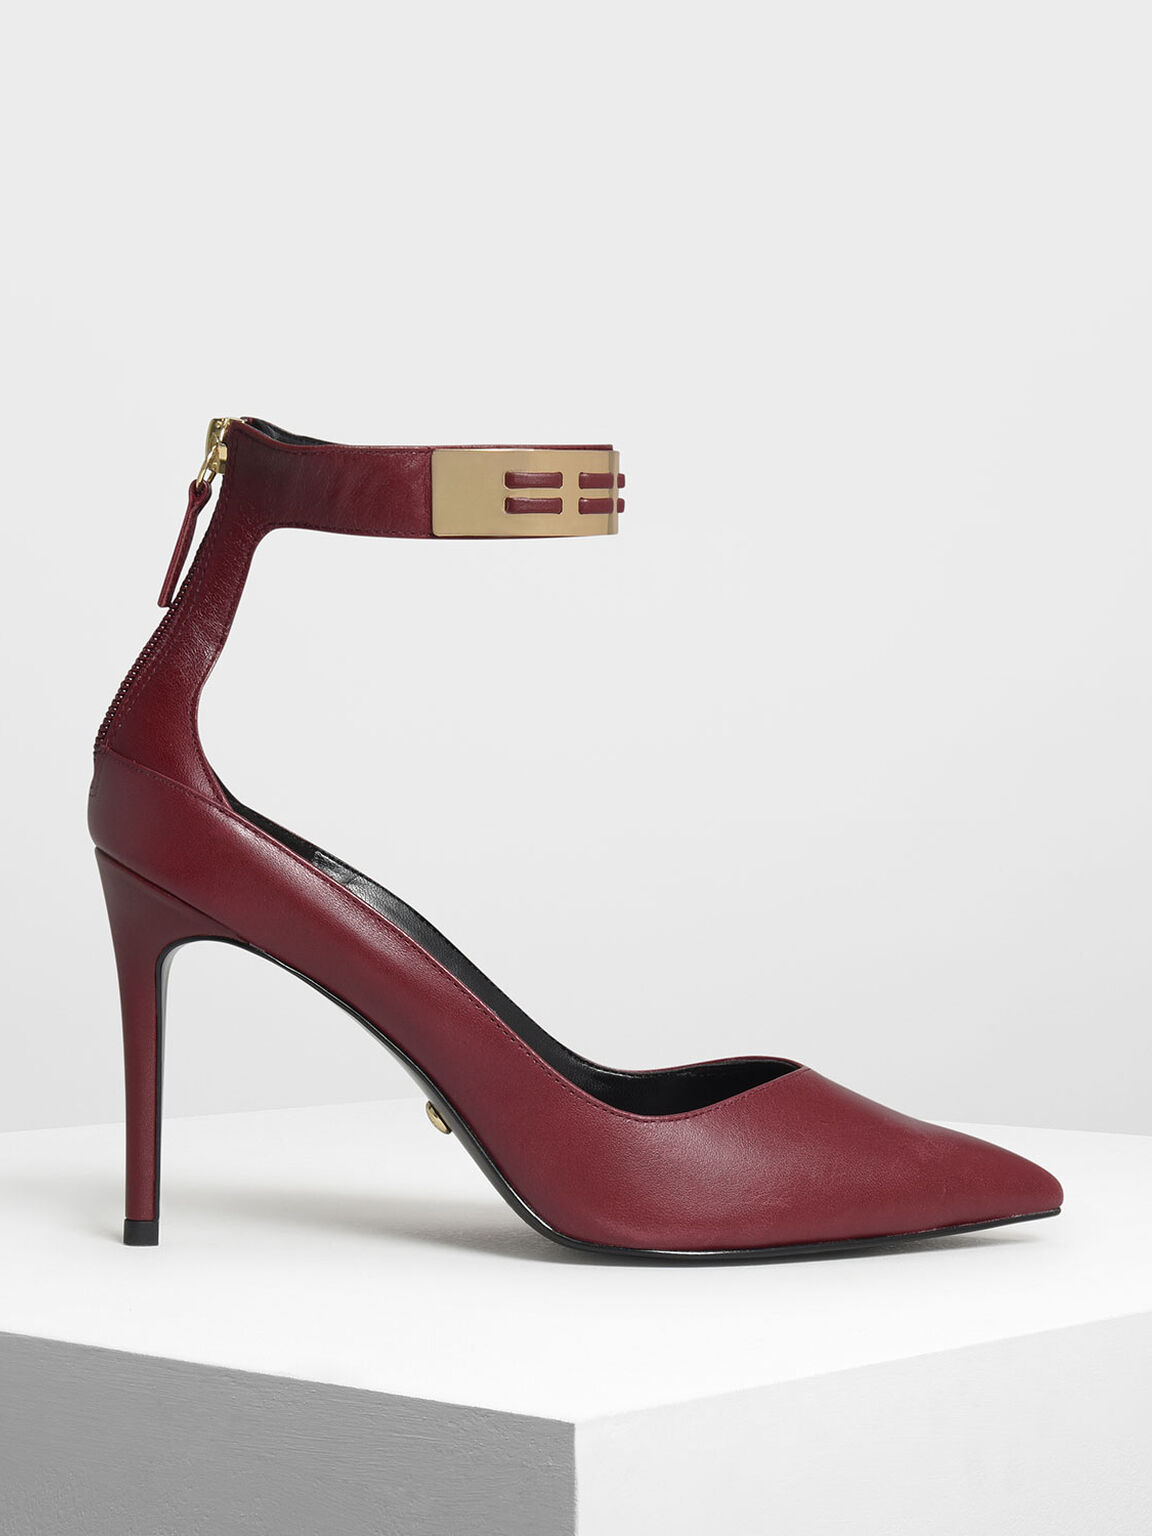 Metallic Cuff Leather Heels, Burgundy, hi-res